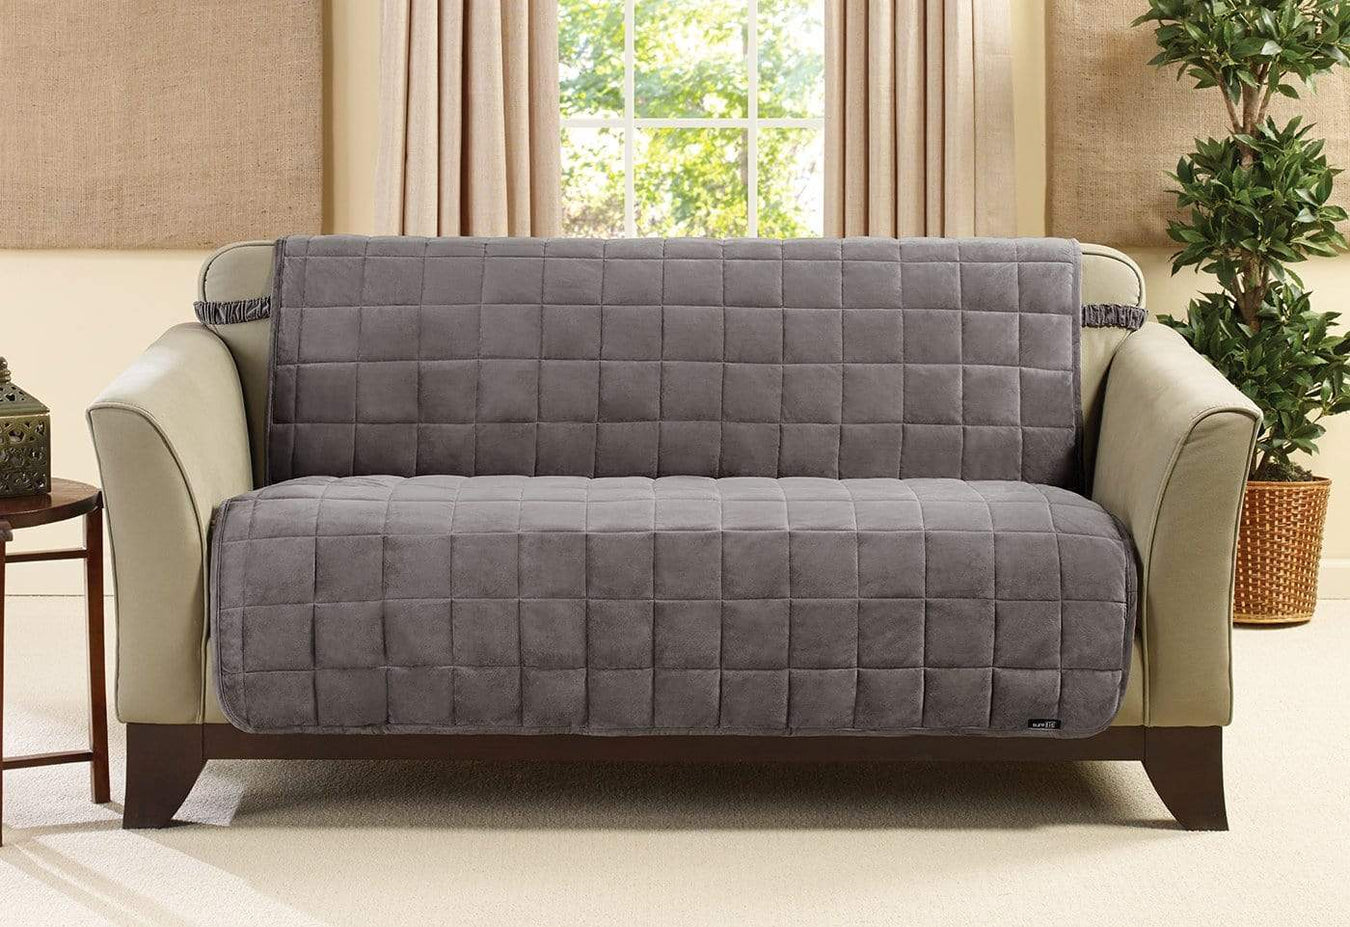 Marvelous Deluxe Comfort Armless Loveseat Furniture Cover Machine Download Free Architecture Designs Scobabritishbridgeorg